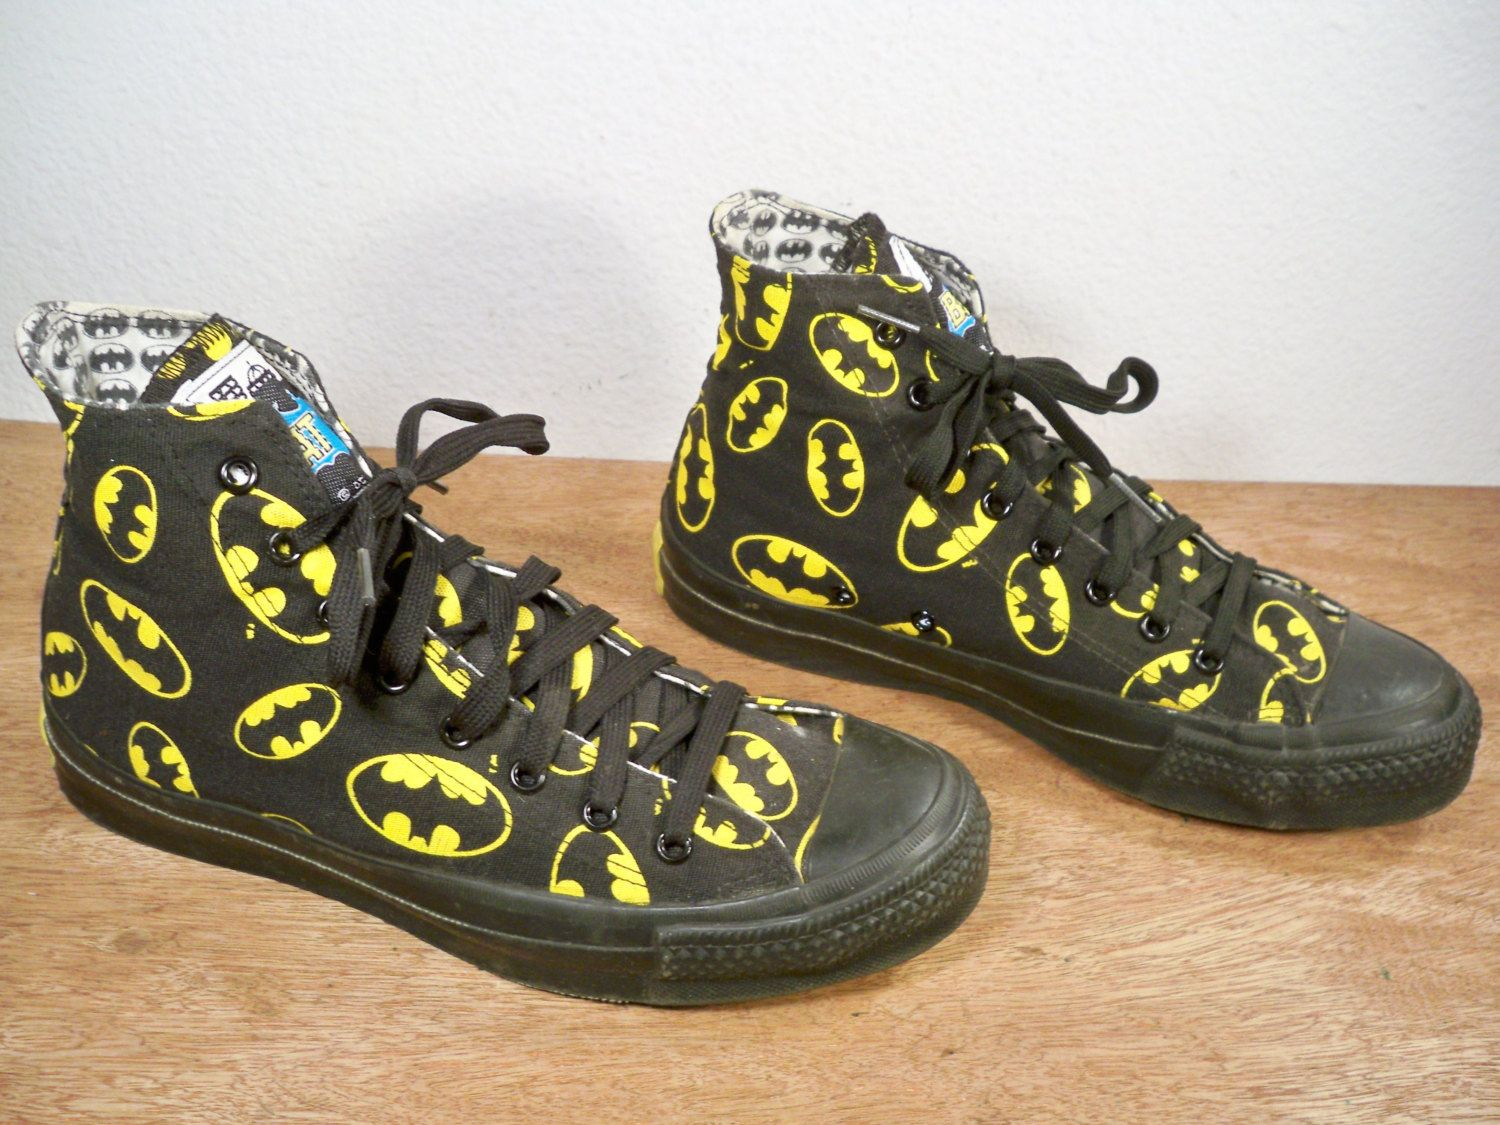 8239ae2f151627 Vintage Converse Batman DC Comics 1989 Black   Yellow Canvas High Top Men s  Shoes Sneakers Made in USA Size 6.5.  350.00